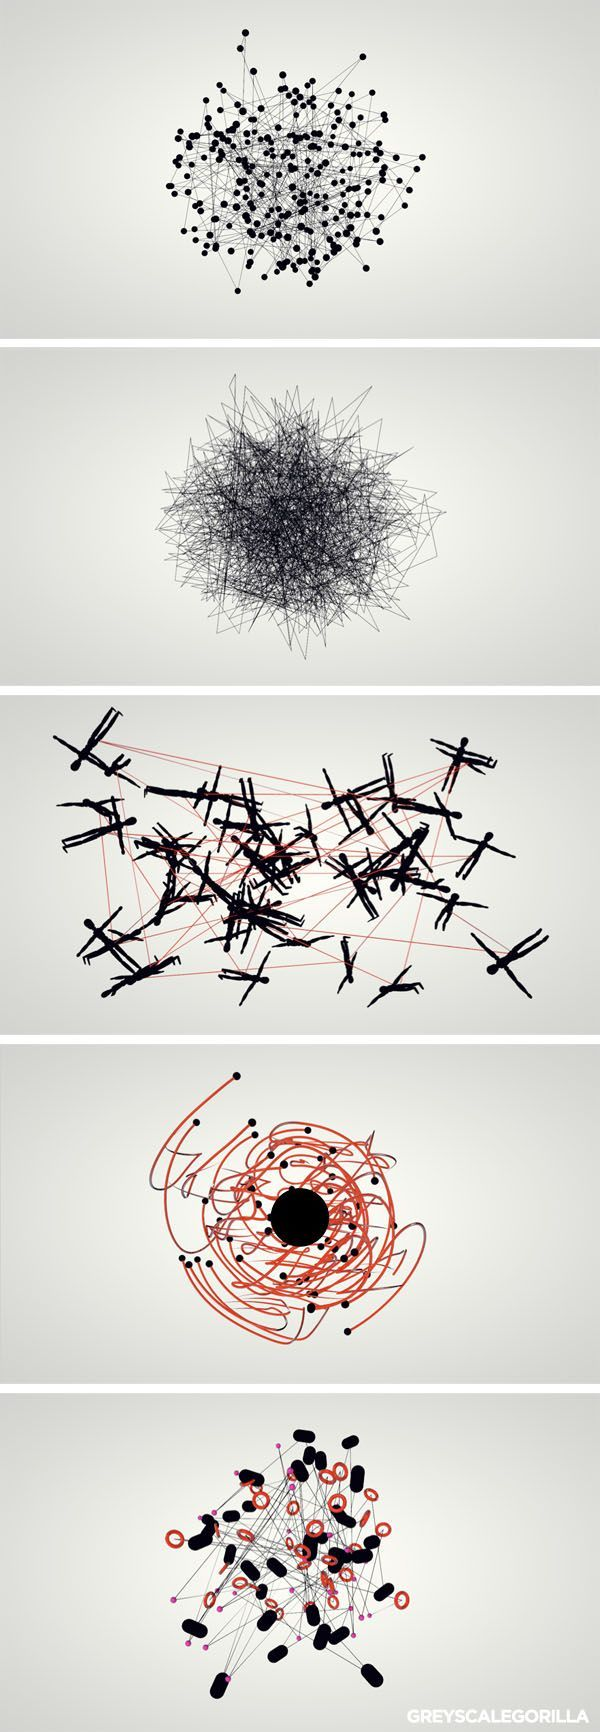 Beautiful abstracts of networks in nature. The future of marketing is here.